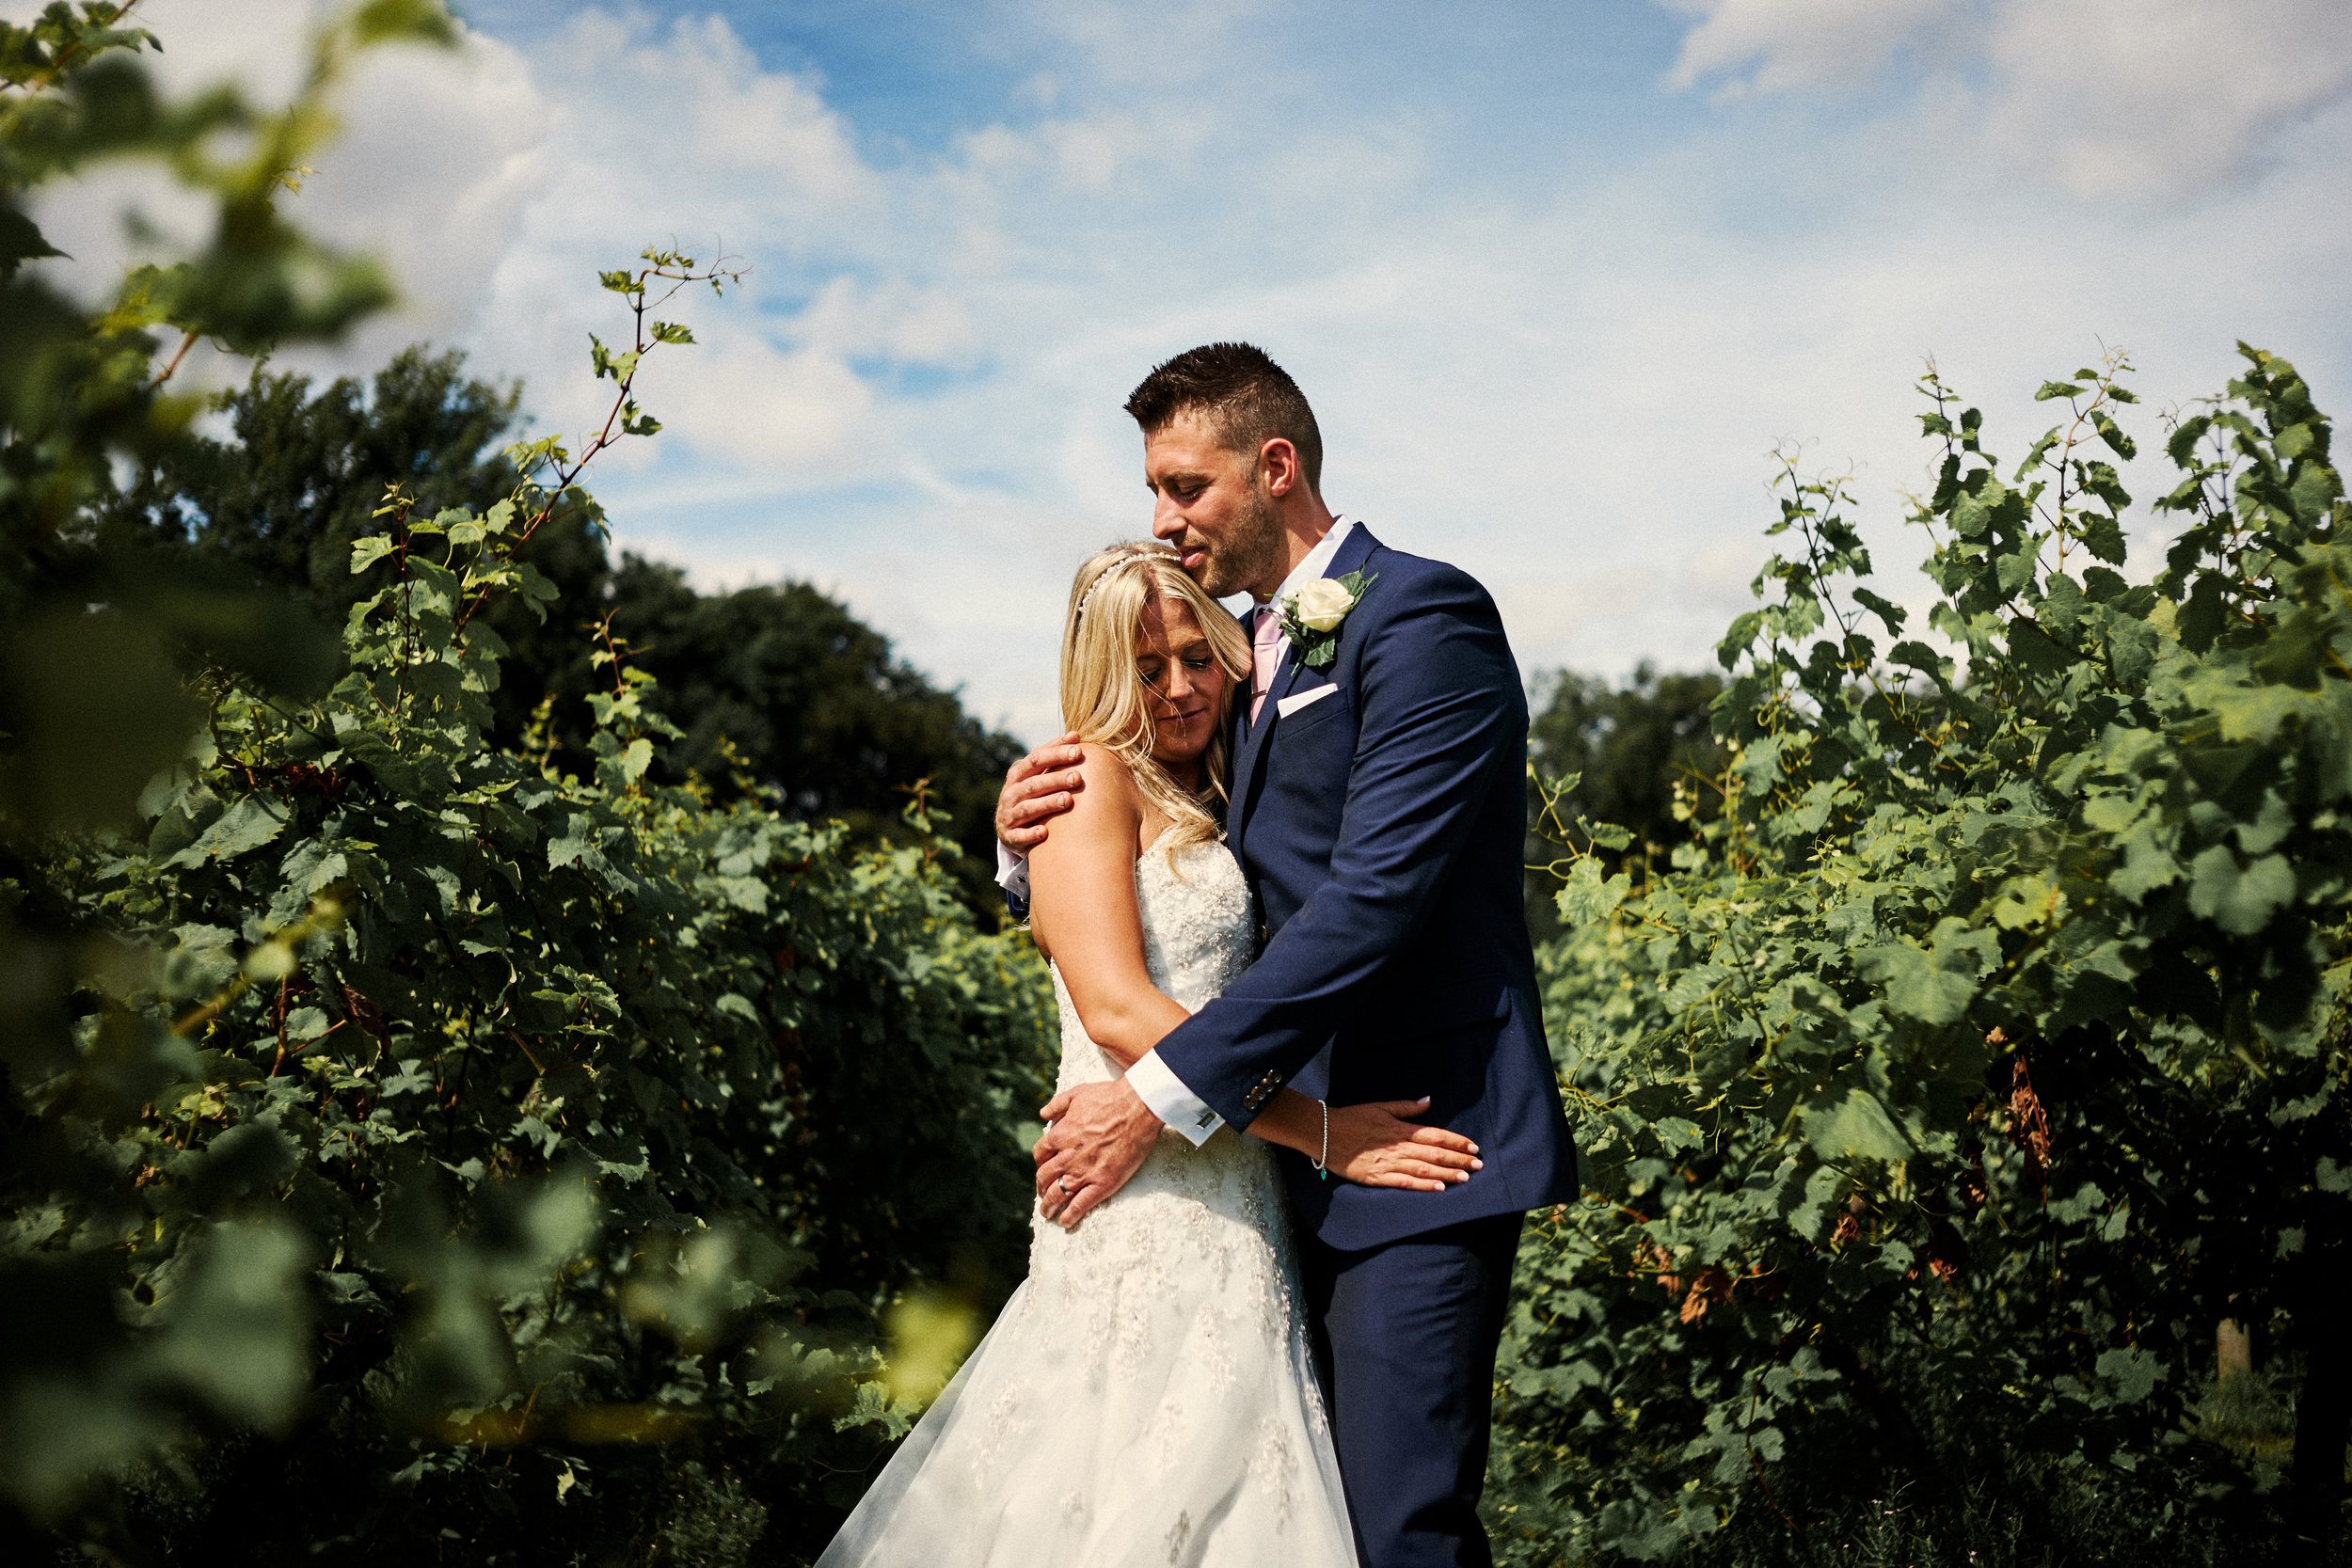 SPECIAL SELECTION… - BEAUTIFUL WEDDING IN THE COUNTRY SIDE